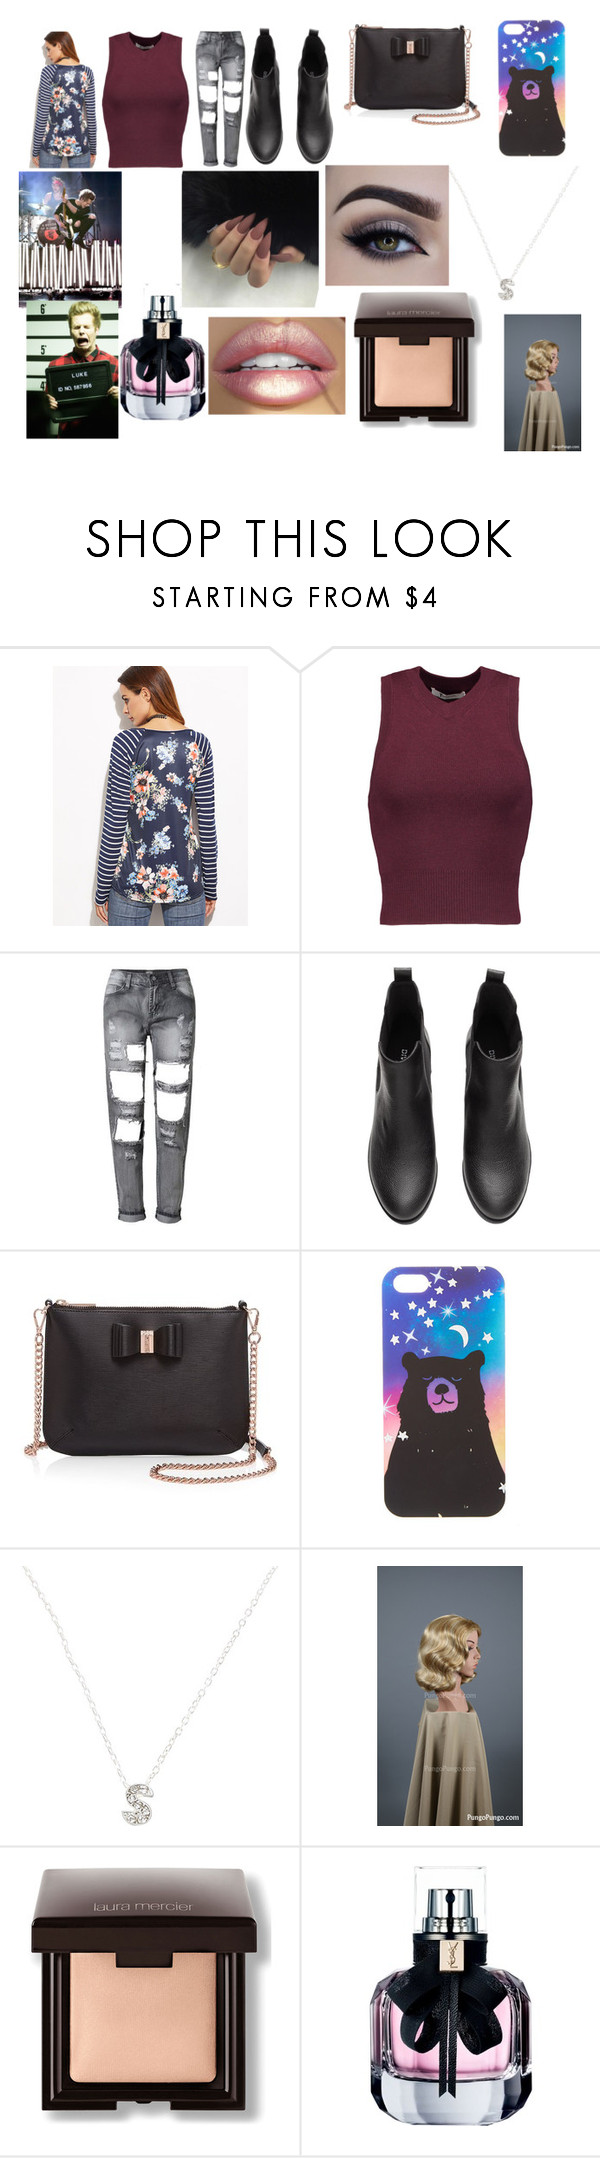 """Christmas Shopping with Luke"" by larryandtarillforeverr14 ❤ liked on Polyvore featuring T By Alexander Wang, Ted Baker, claire's, Laura Mercier, Prada and Yves Saint Laurent"